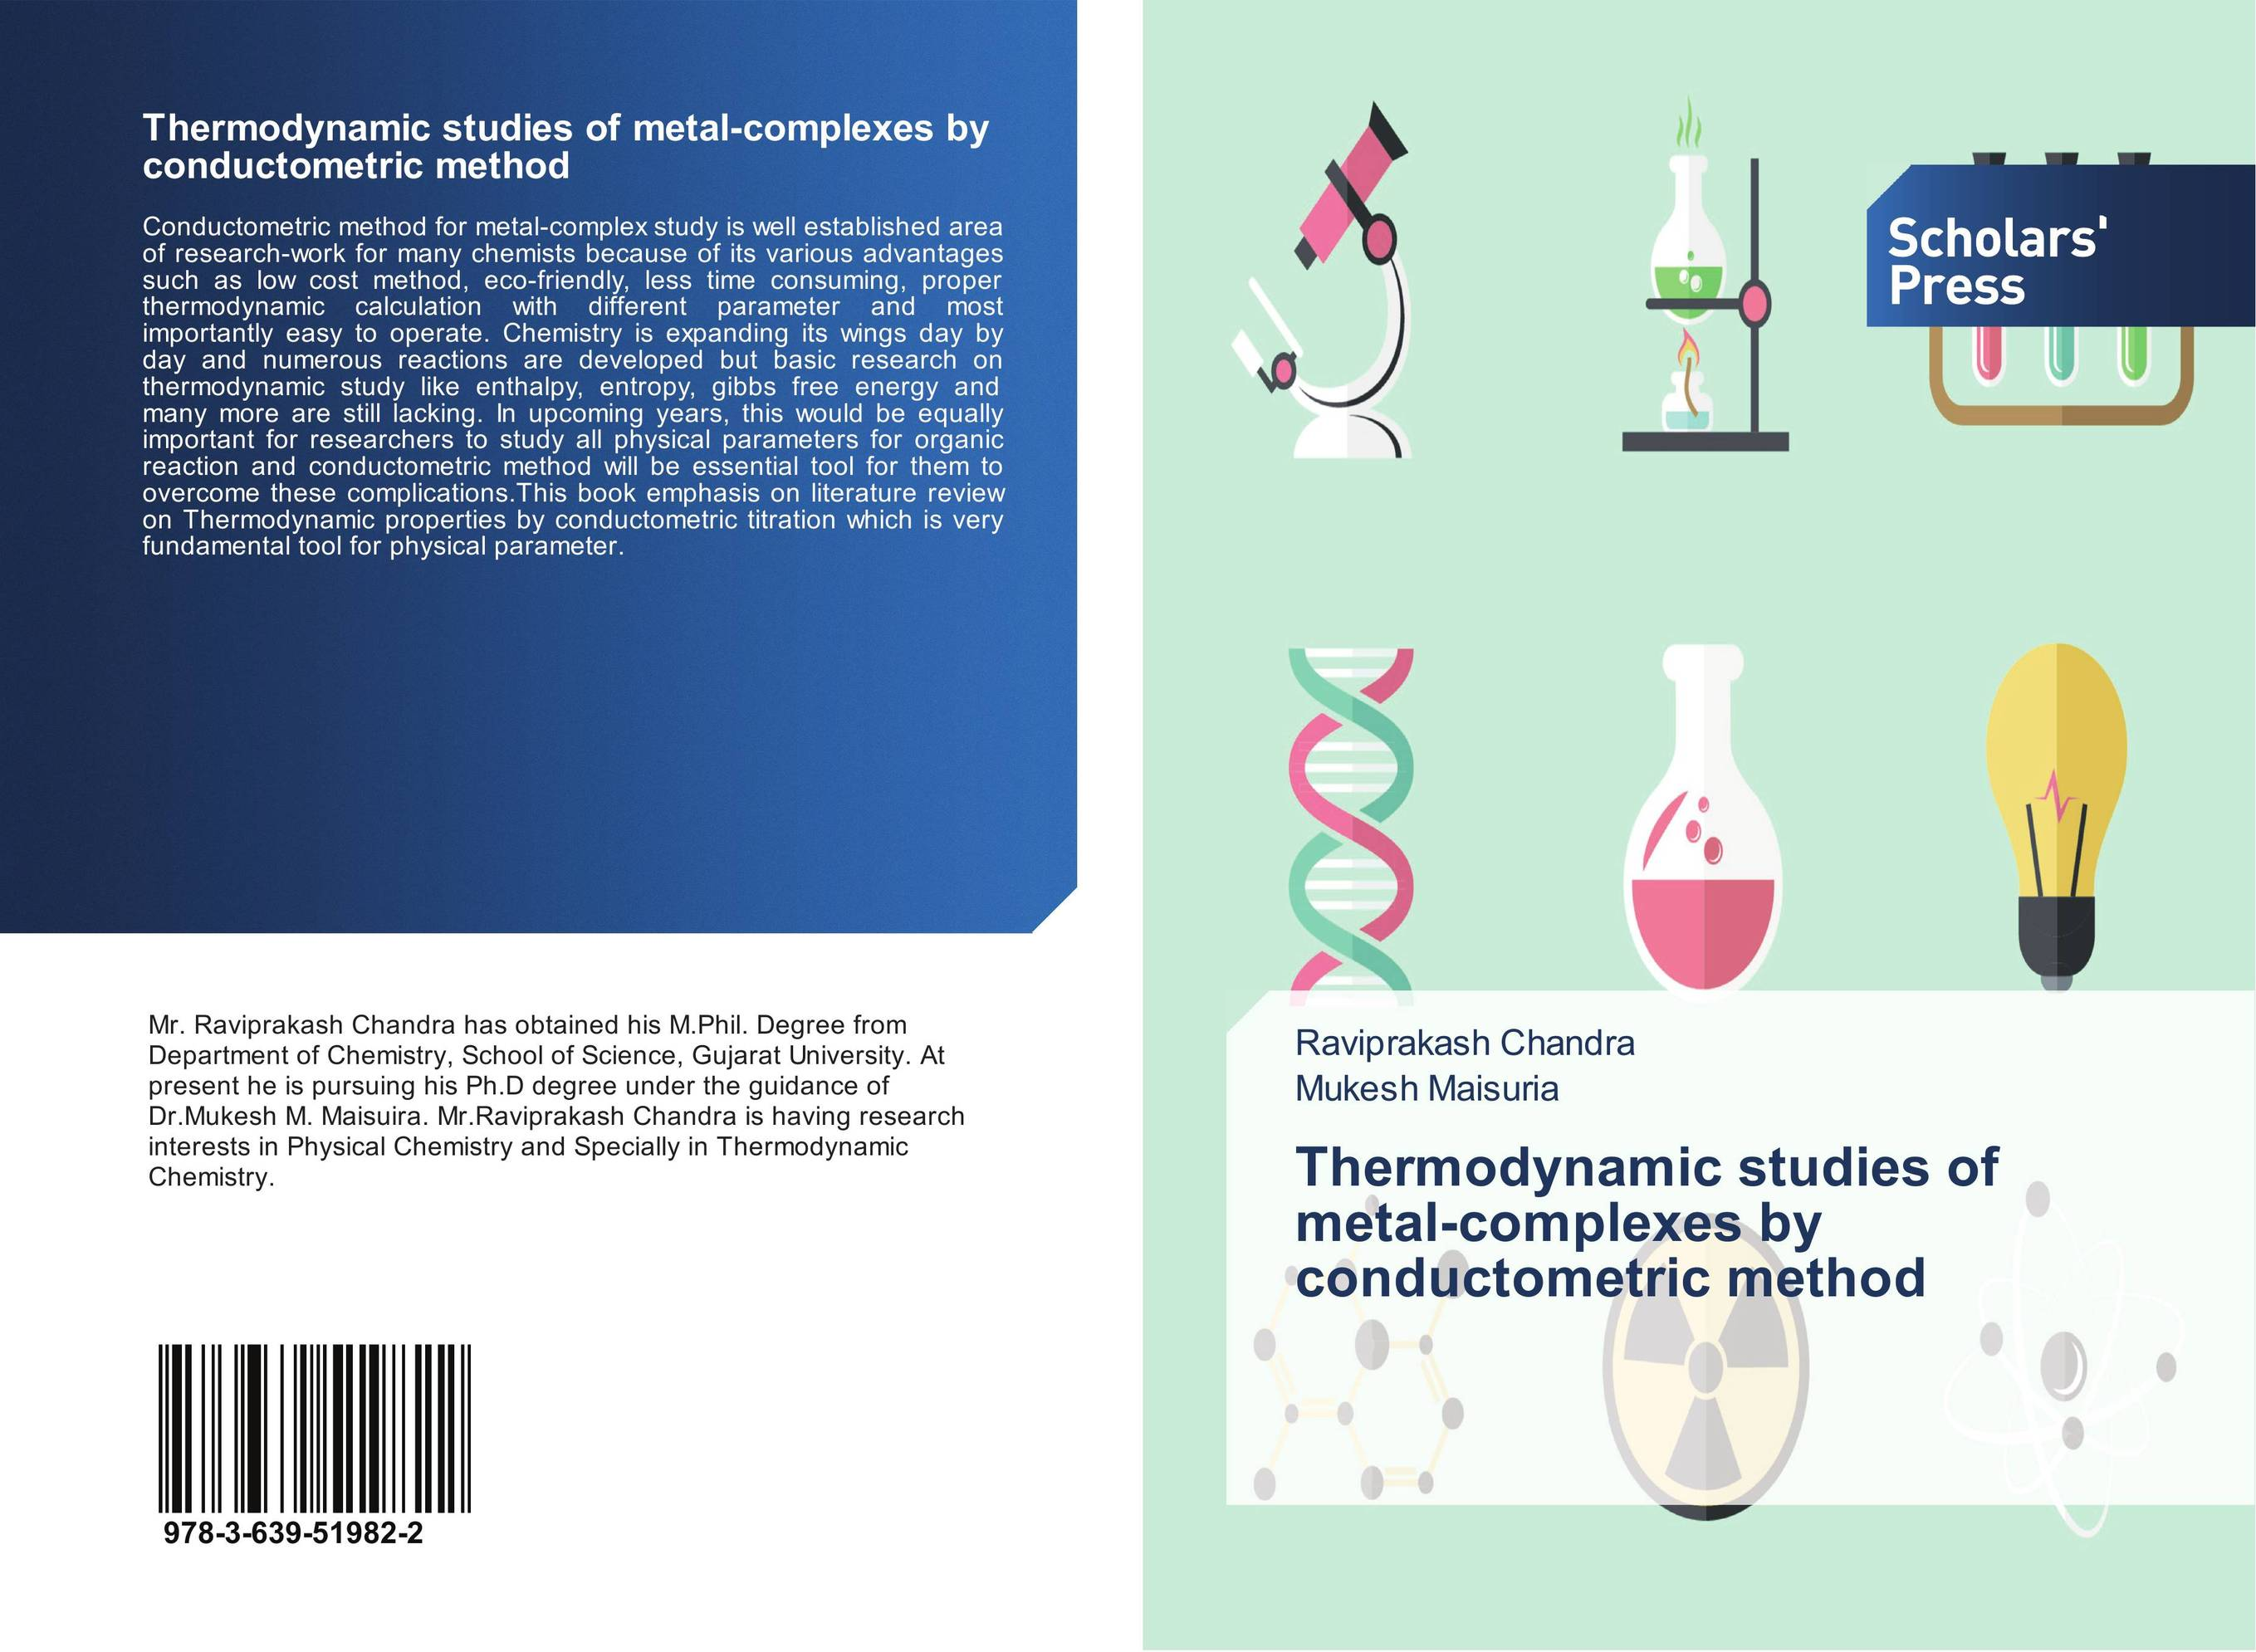 Thermodynamic studies of metal-complexes by conductometric method